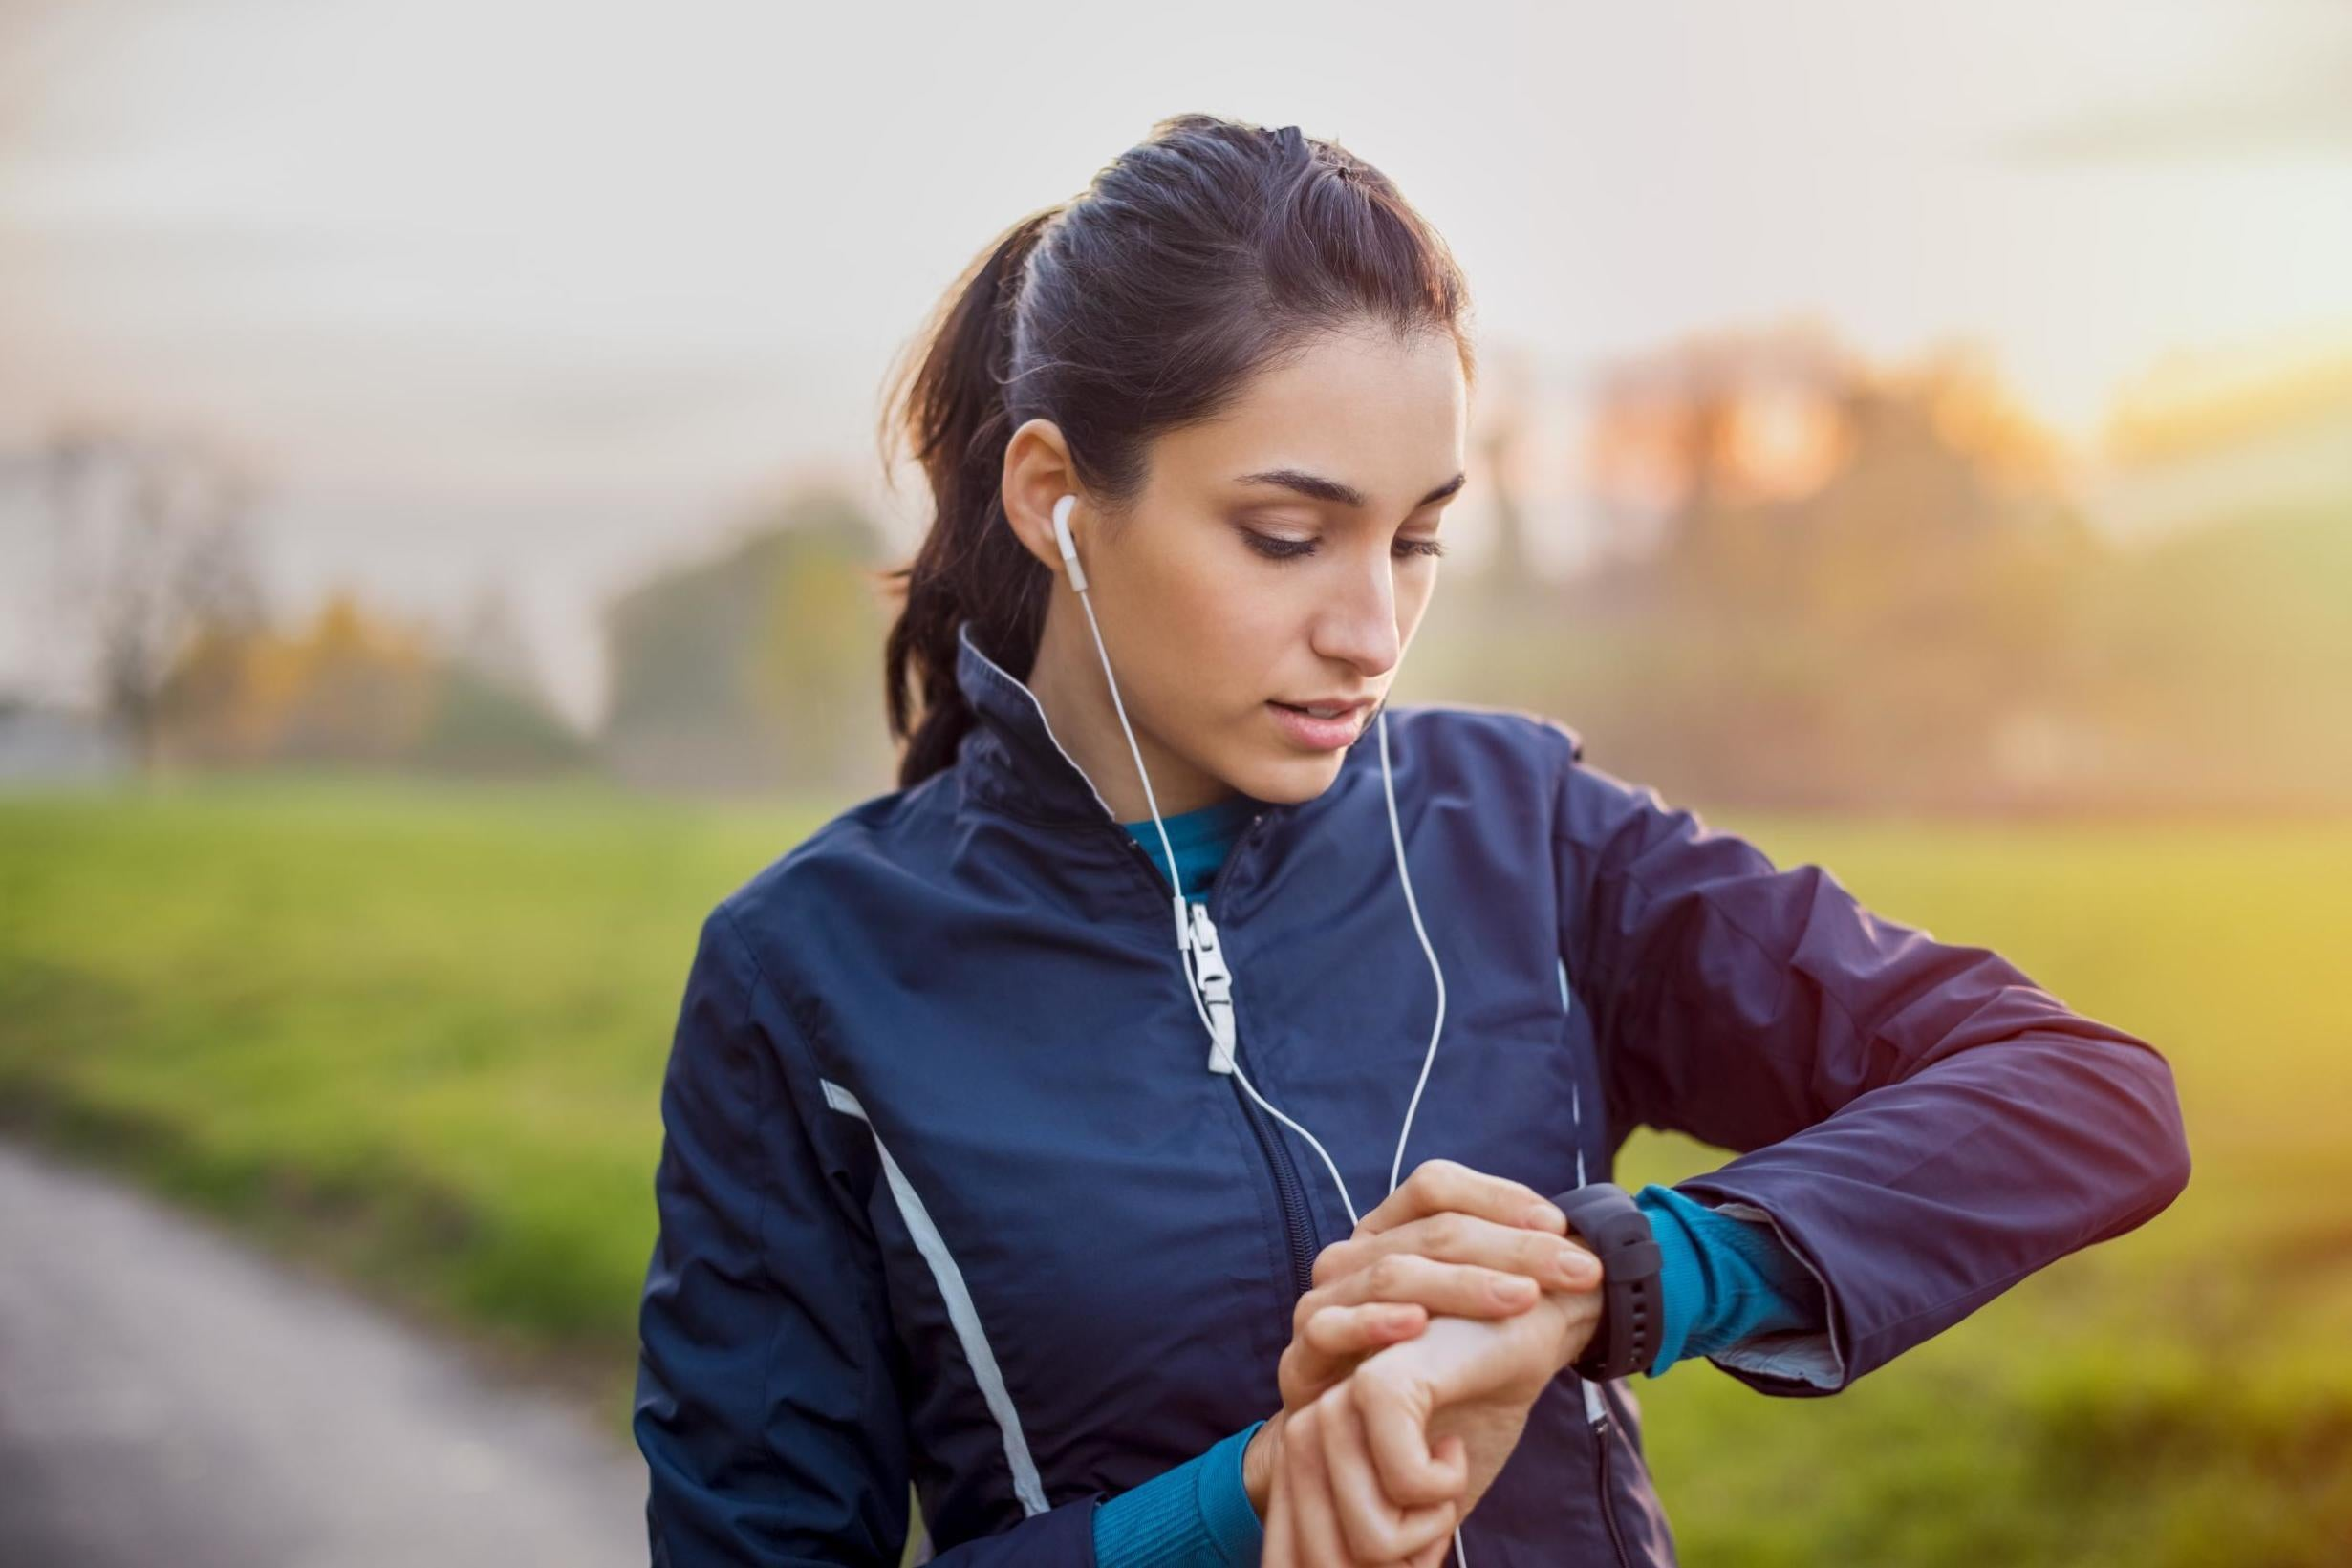 10 best running watches | The Independent